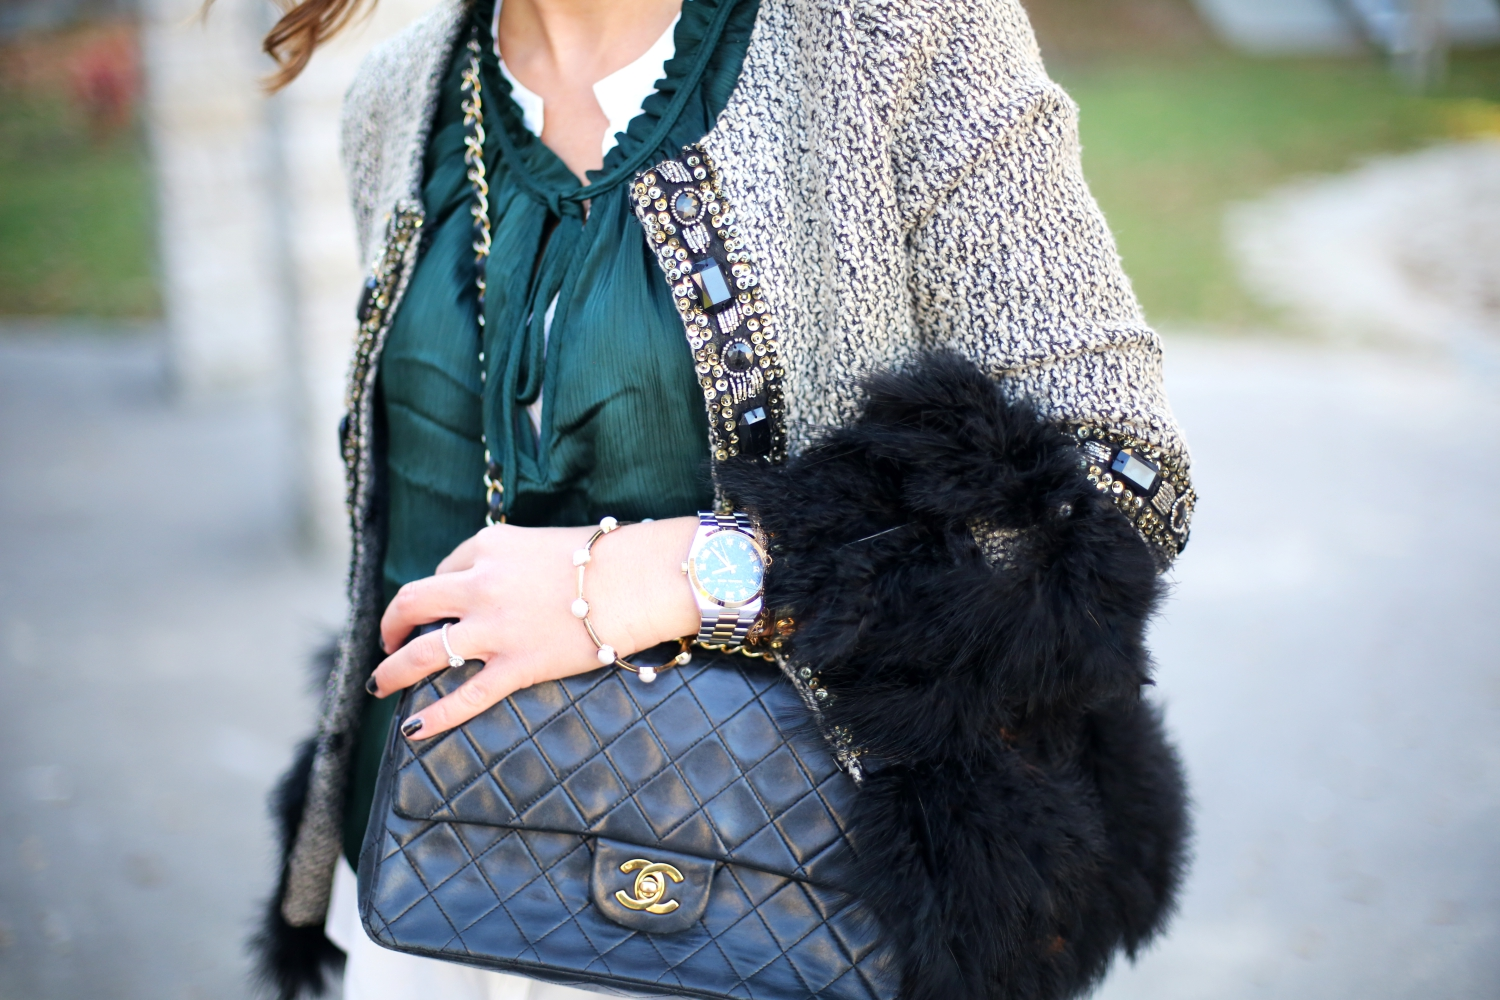 outfit-details-fashionhippieloves-chanel-bag